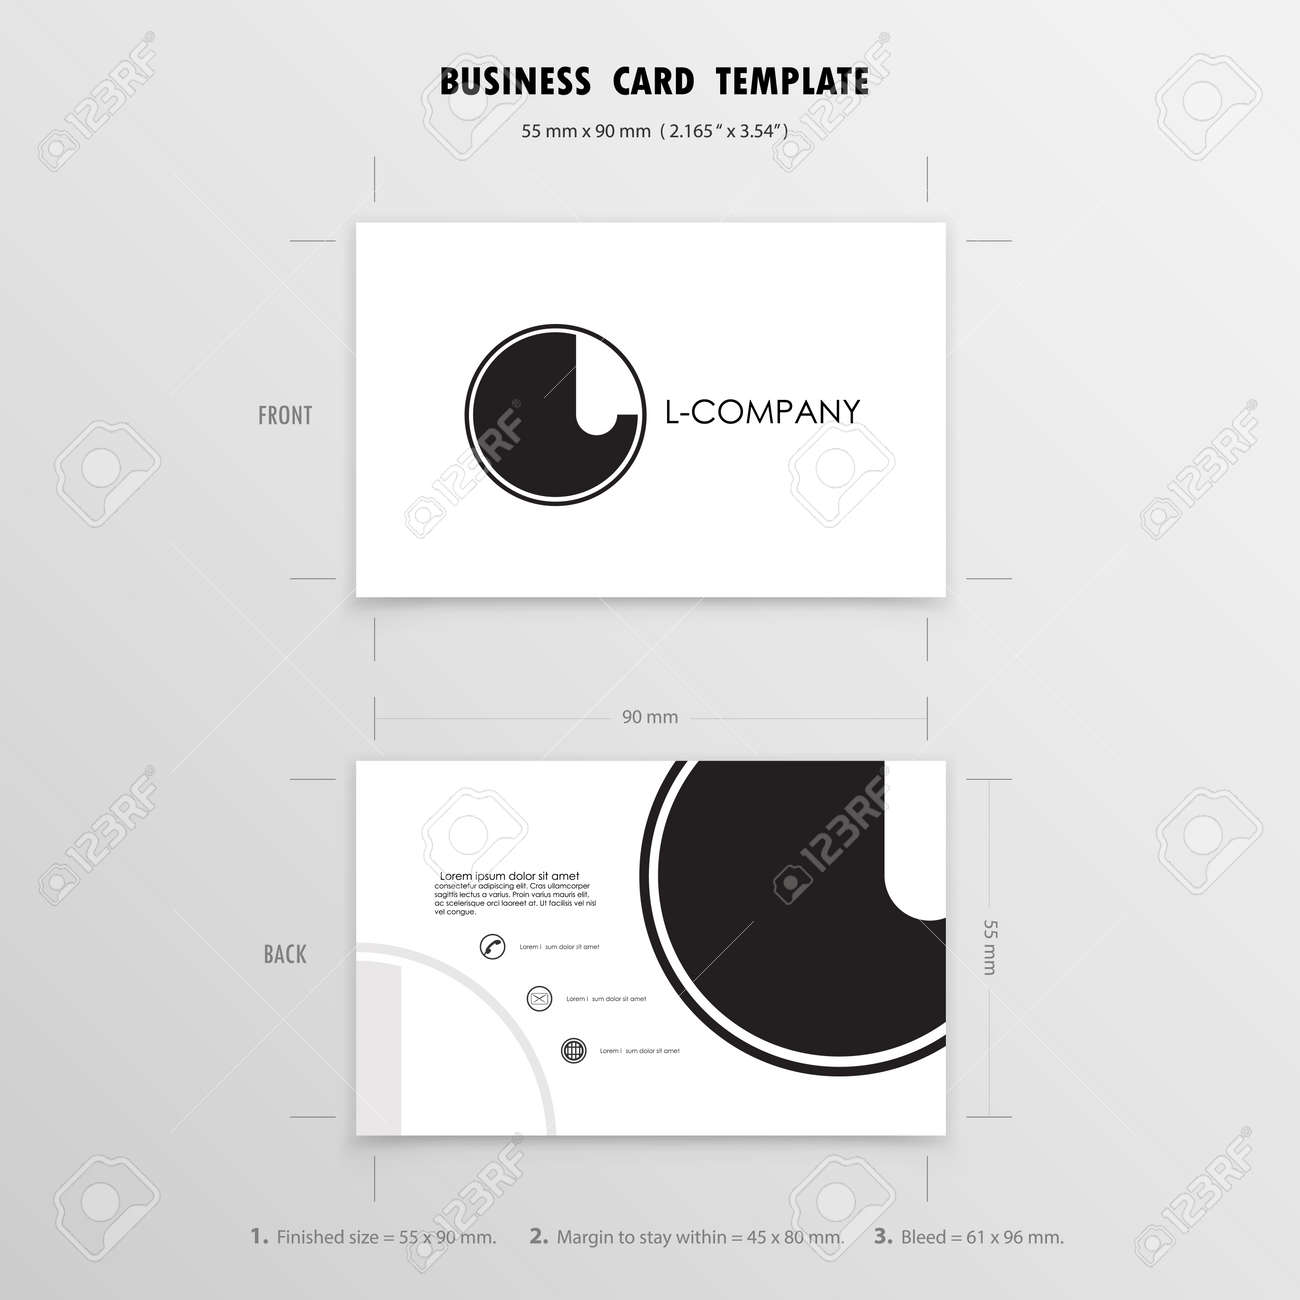 business cards design template name cards symbol size 55 mm